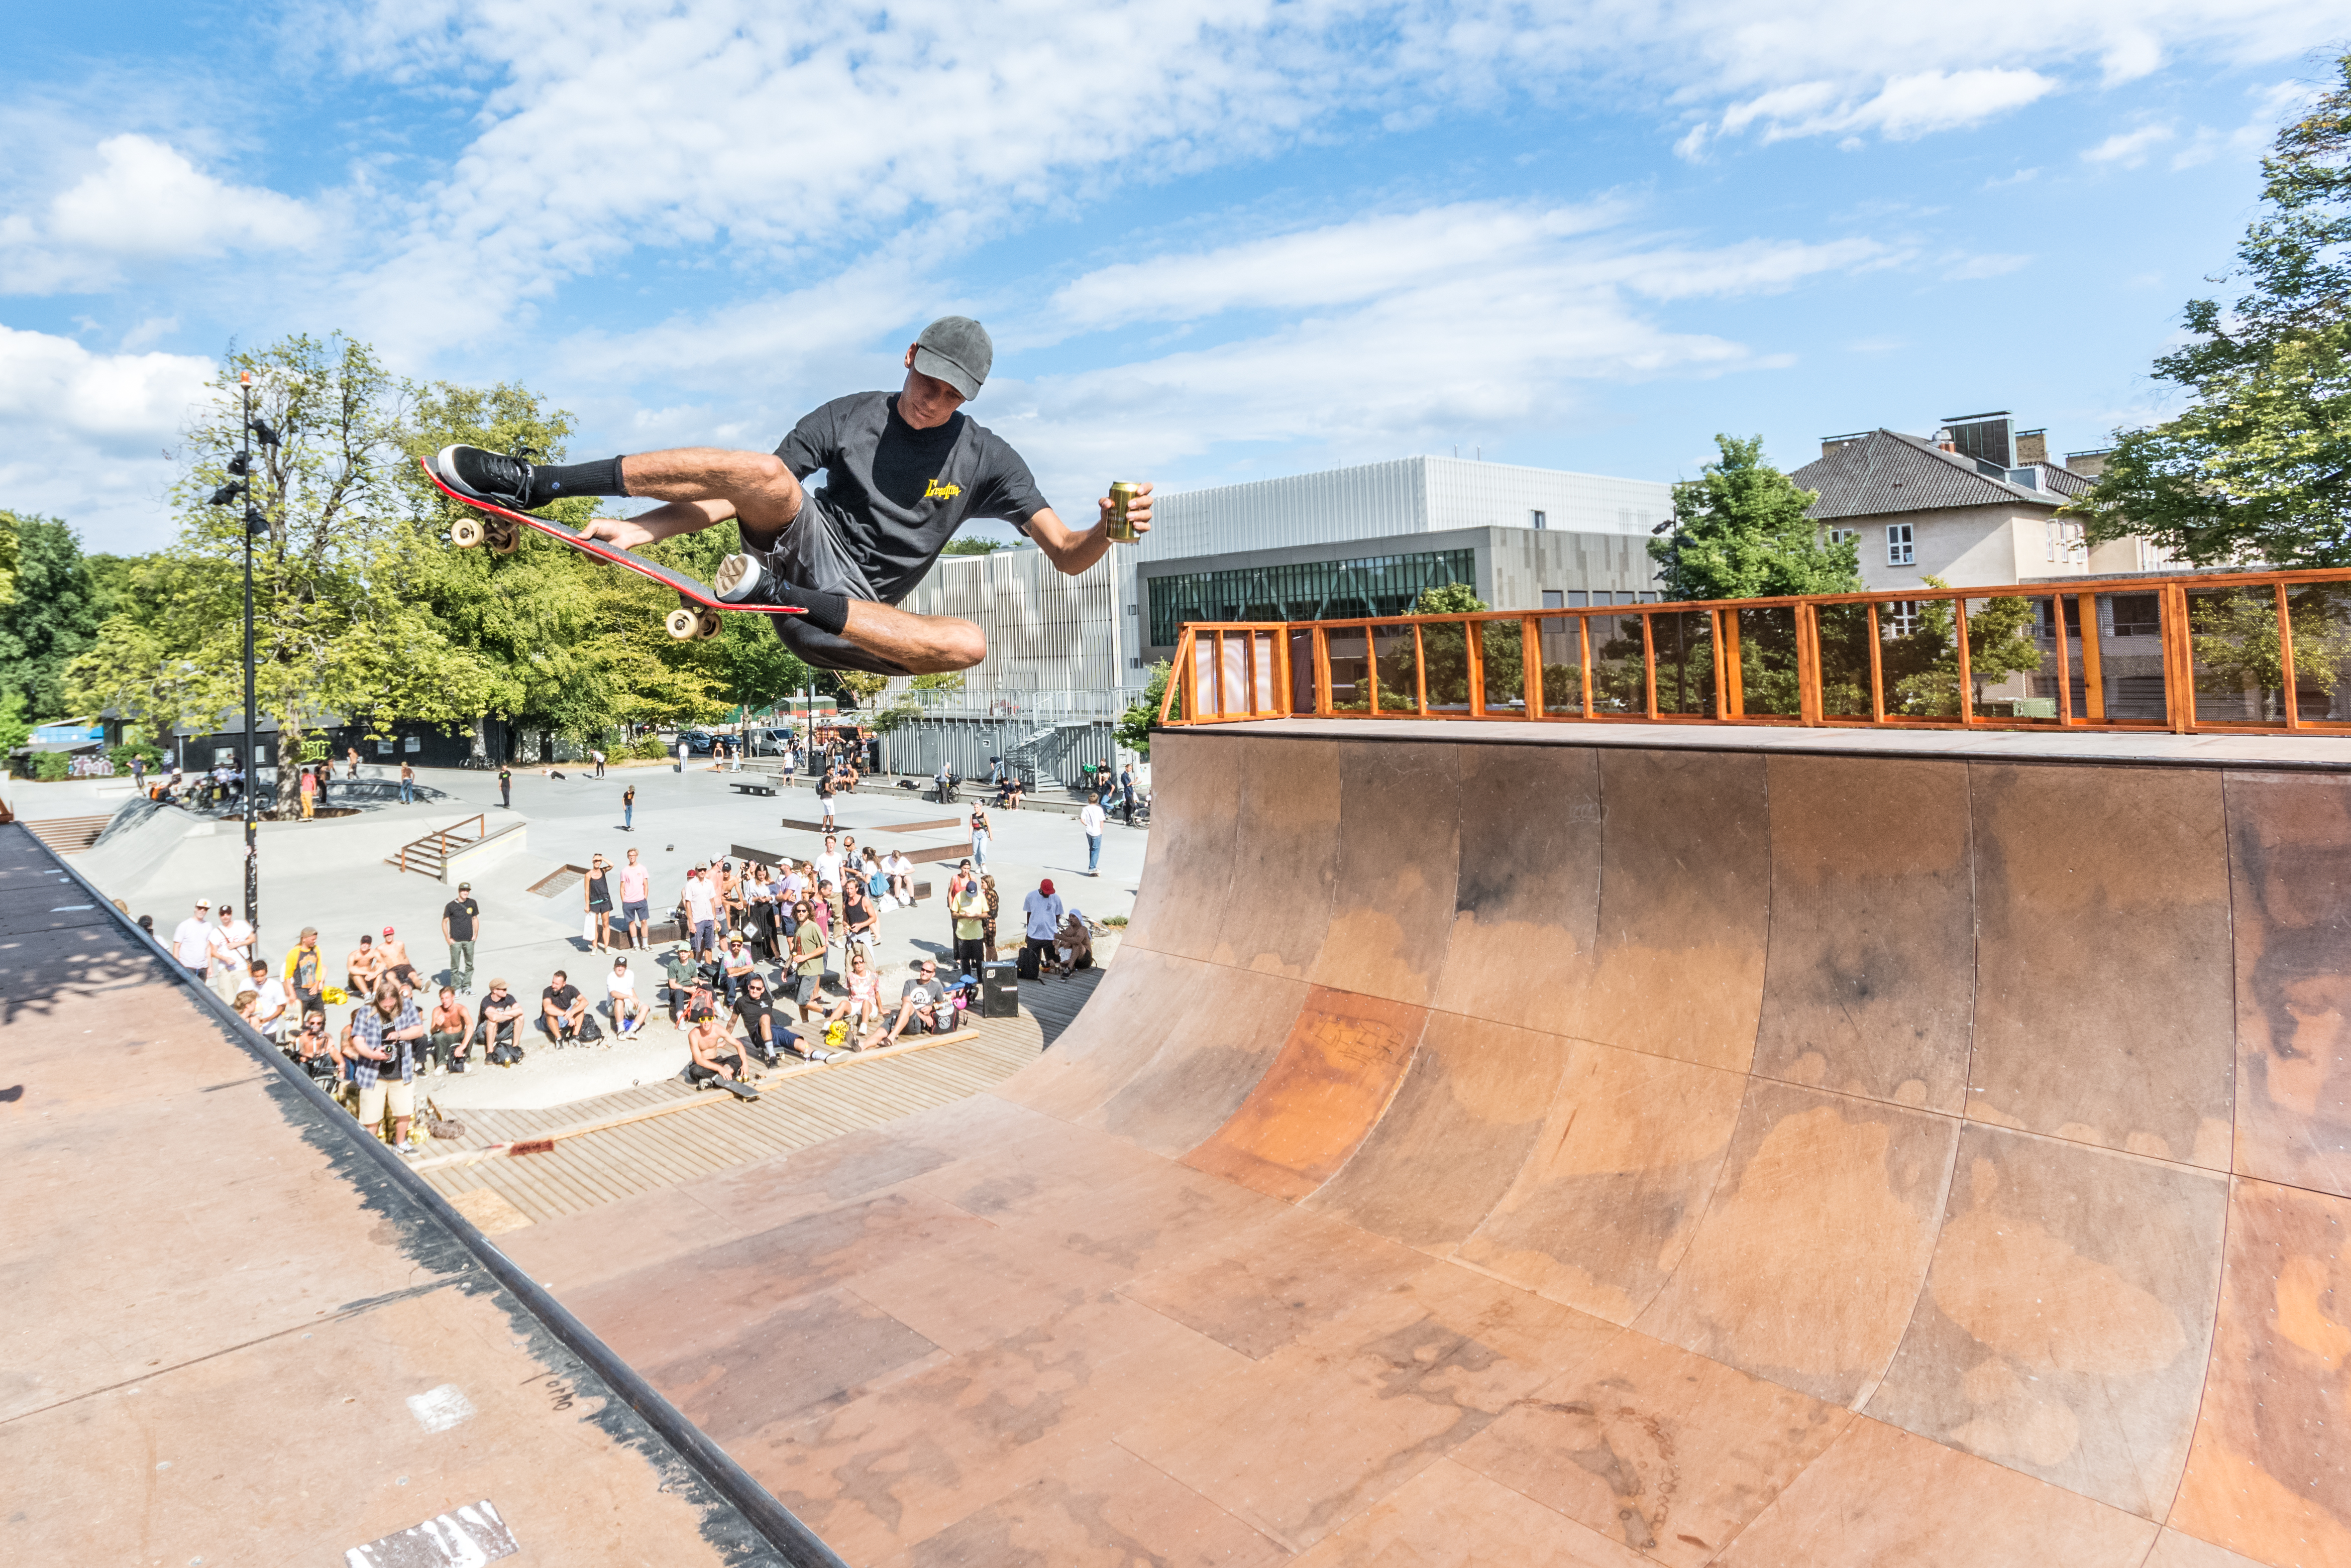 CPH PRO 2018 Vert and Hullet Session - 22 - Jimmy Wilkins